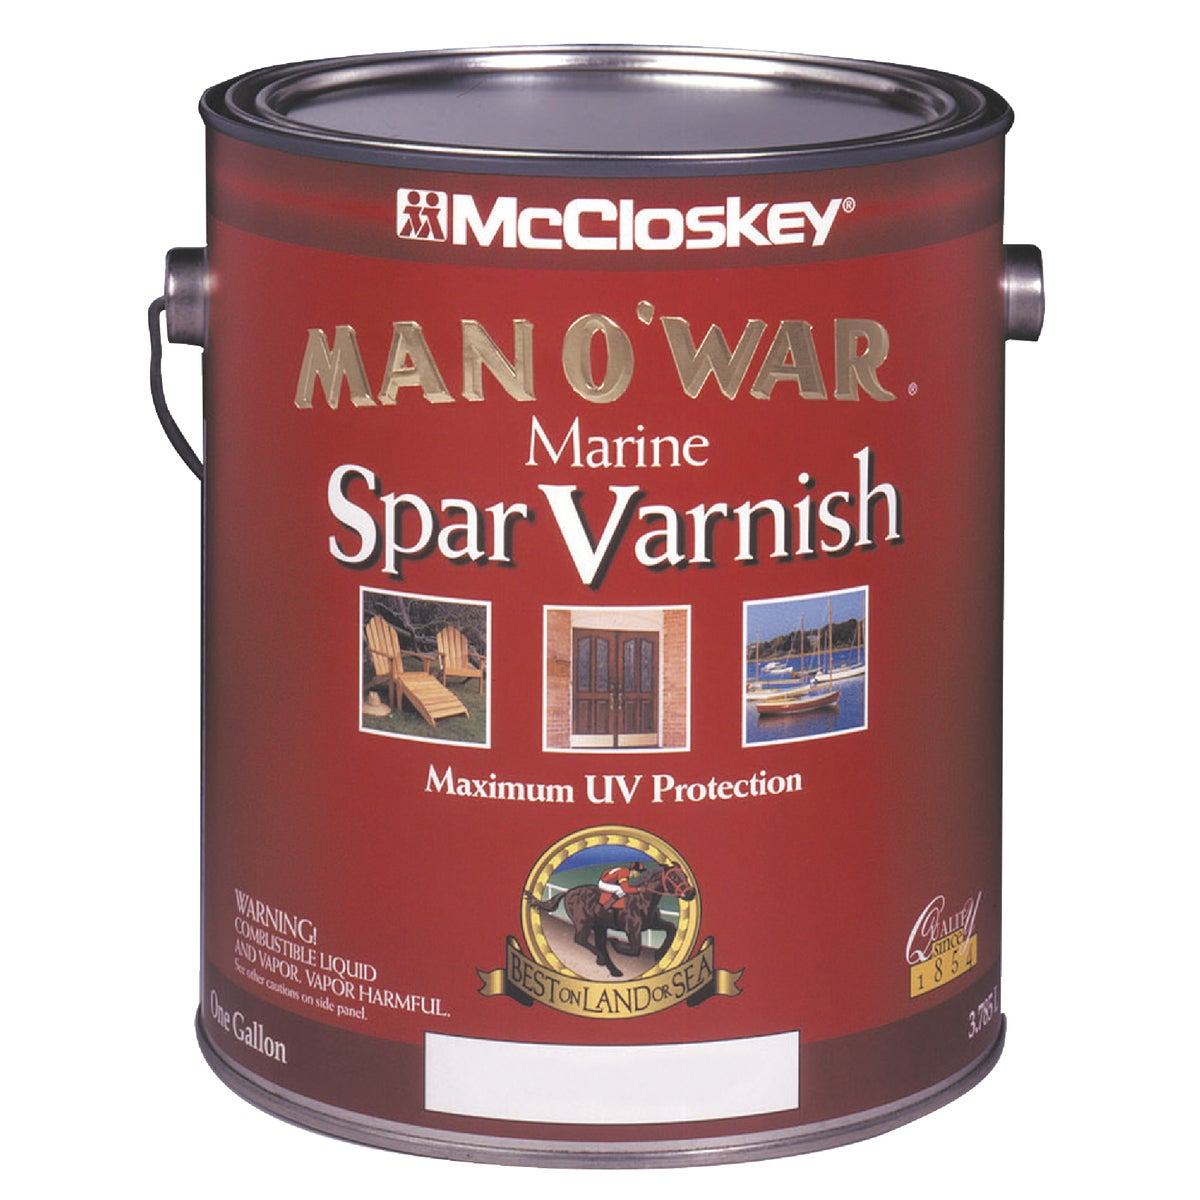 EXT S/G SPAR VARNISH - 080.0007507.007 by Valspar Corp